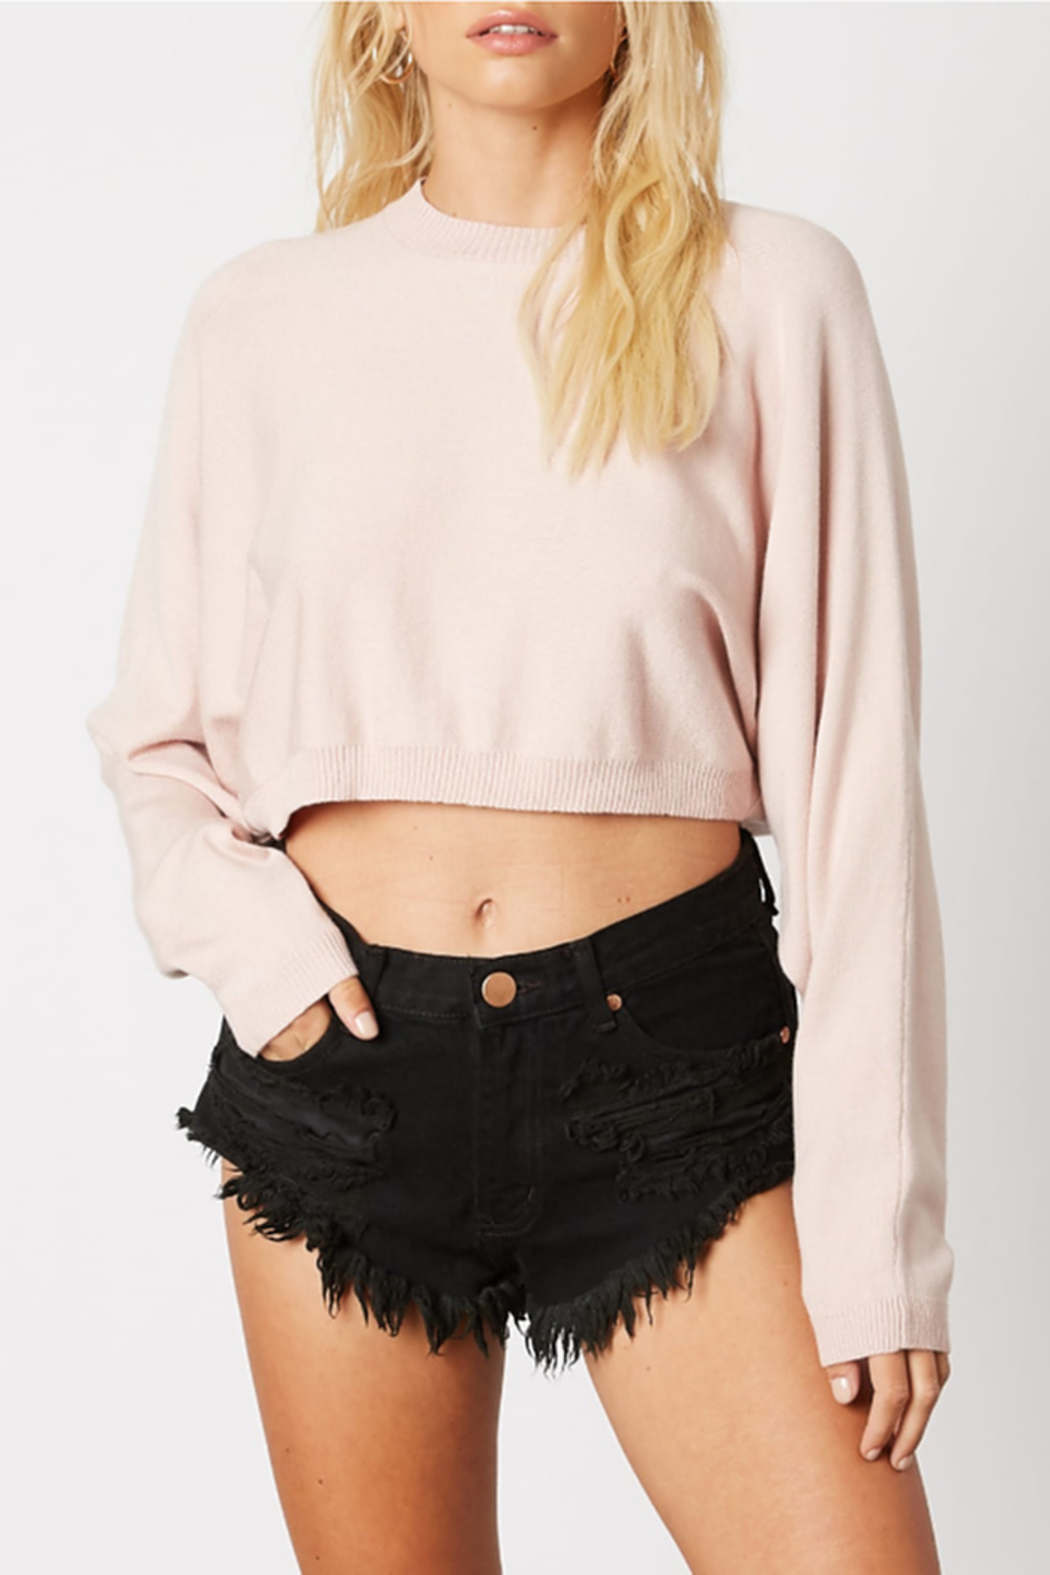 Cotton Candy Cropped Knit Sweater - Front Cropped Image